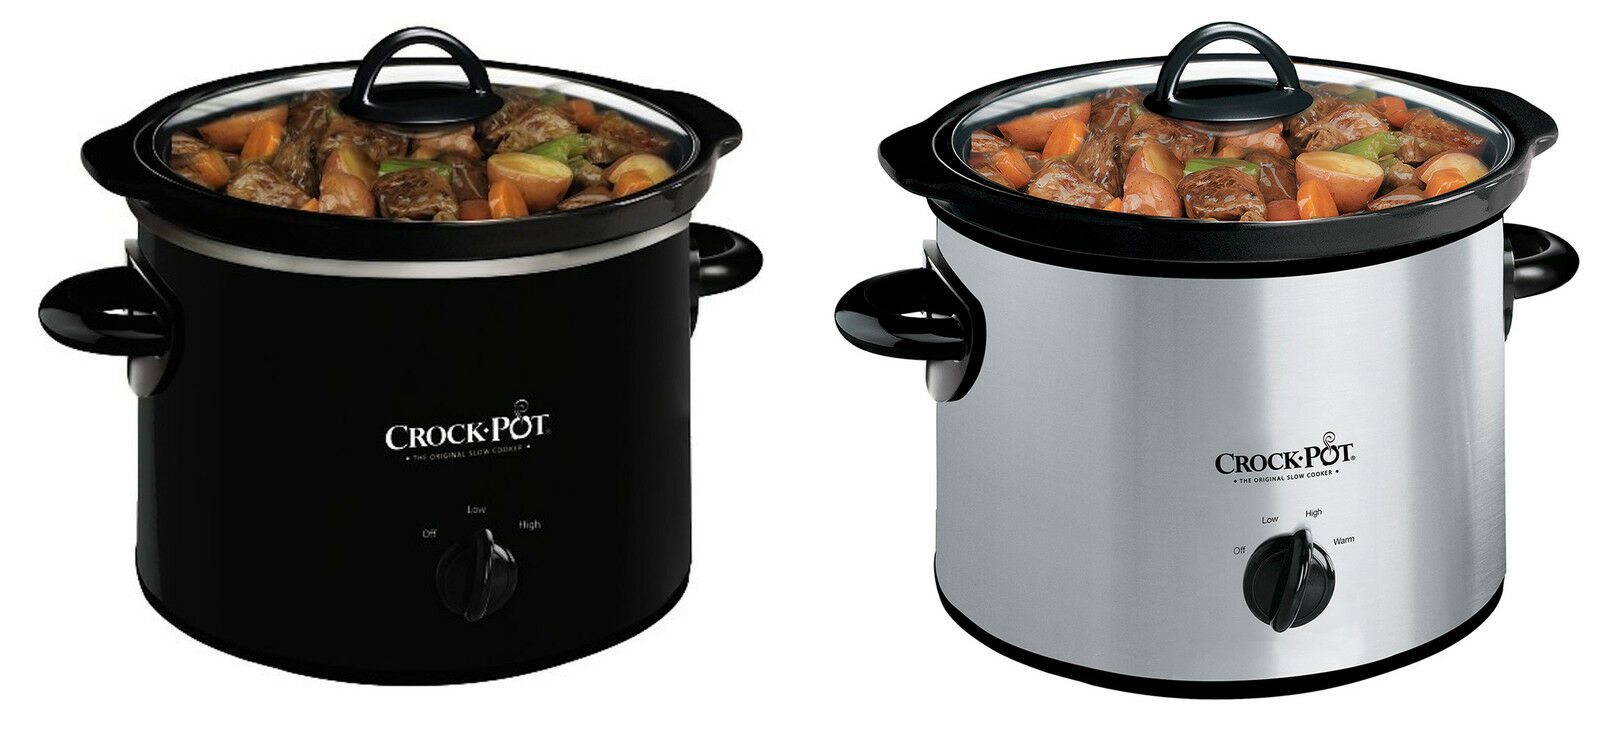 Crock Pot Scr300 Manual Slow Cooker 2 Colors Ebay